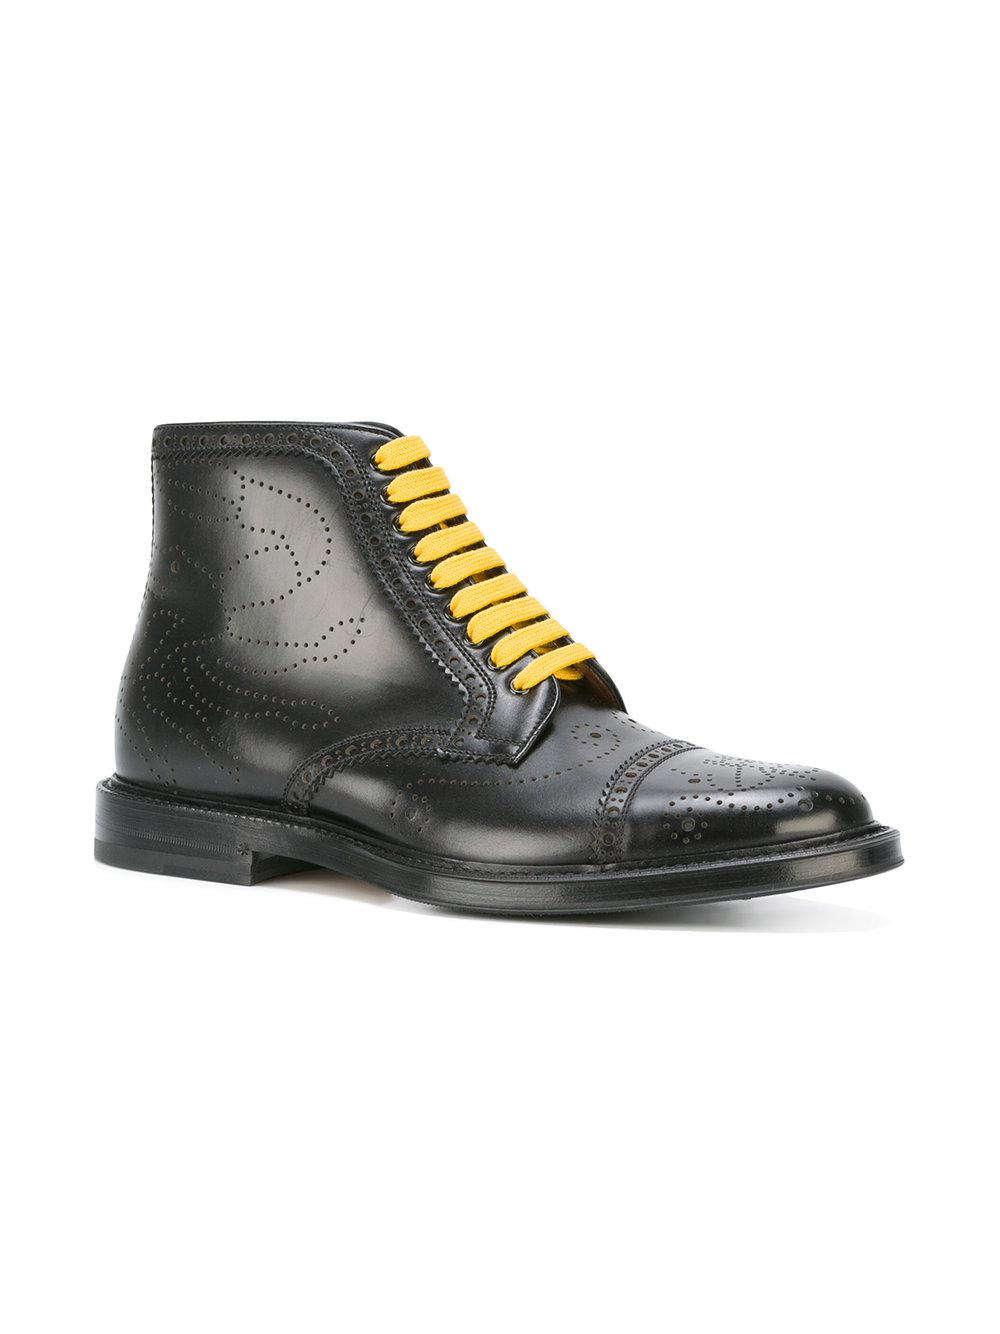 lyst gucci contrast lace boots in black for men